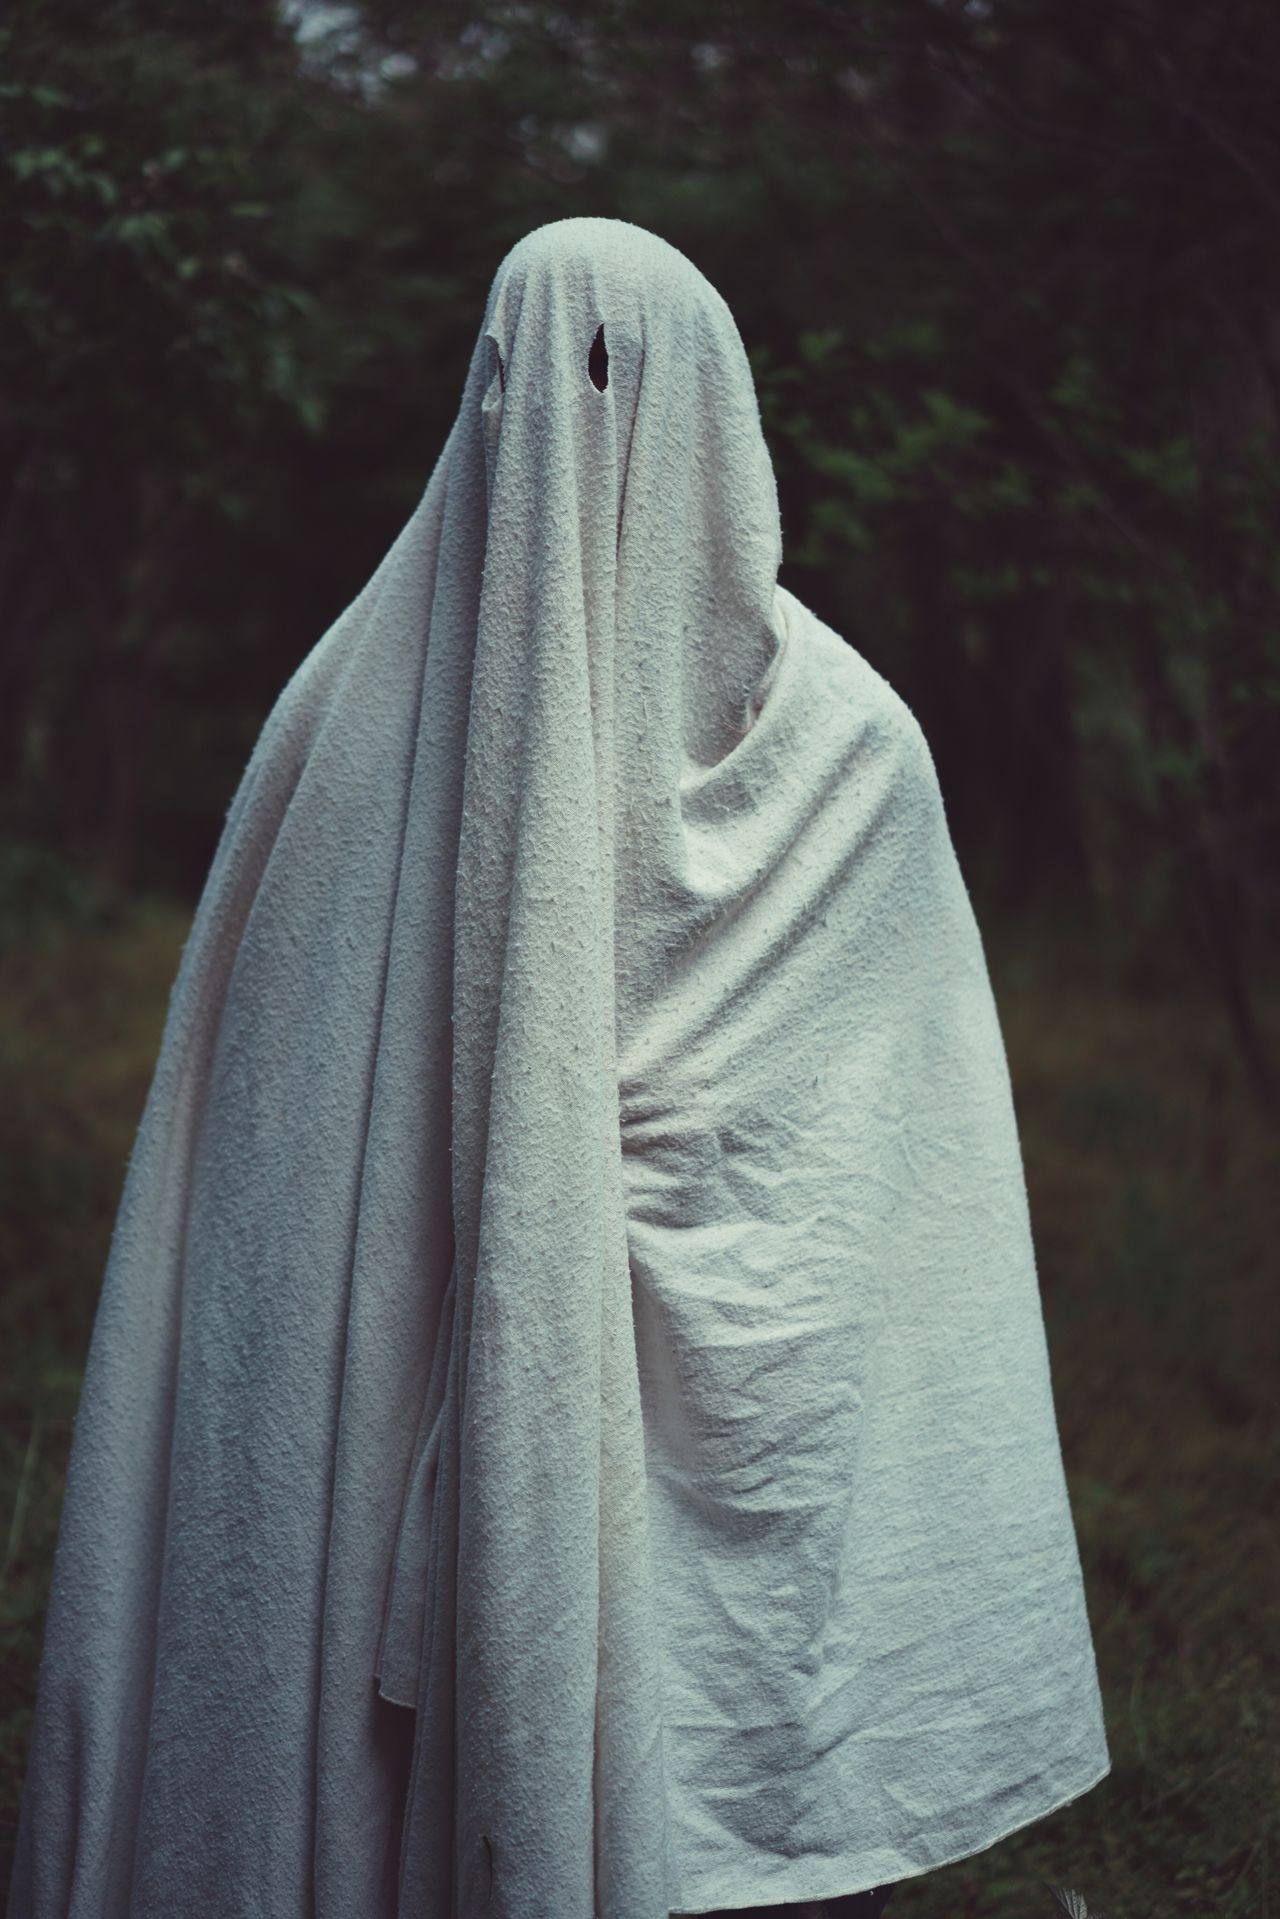 Towel Textile Focus On Foreground Day No People Outdoors Close-up Ghost Creepy Halloween